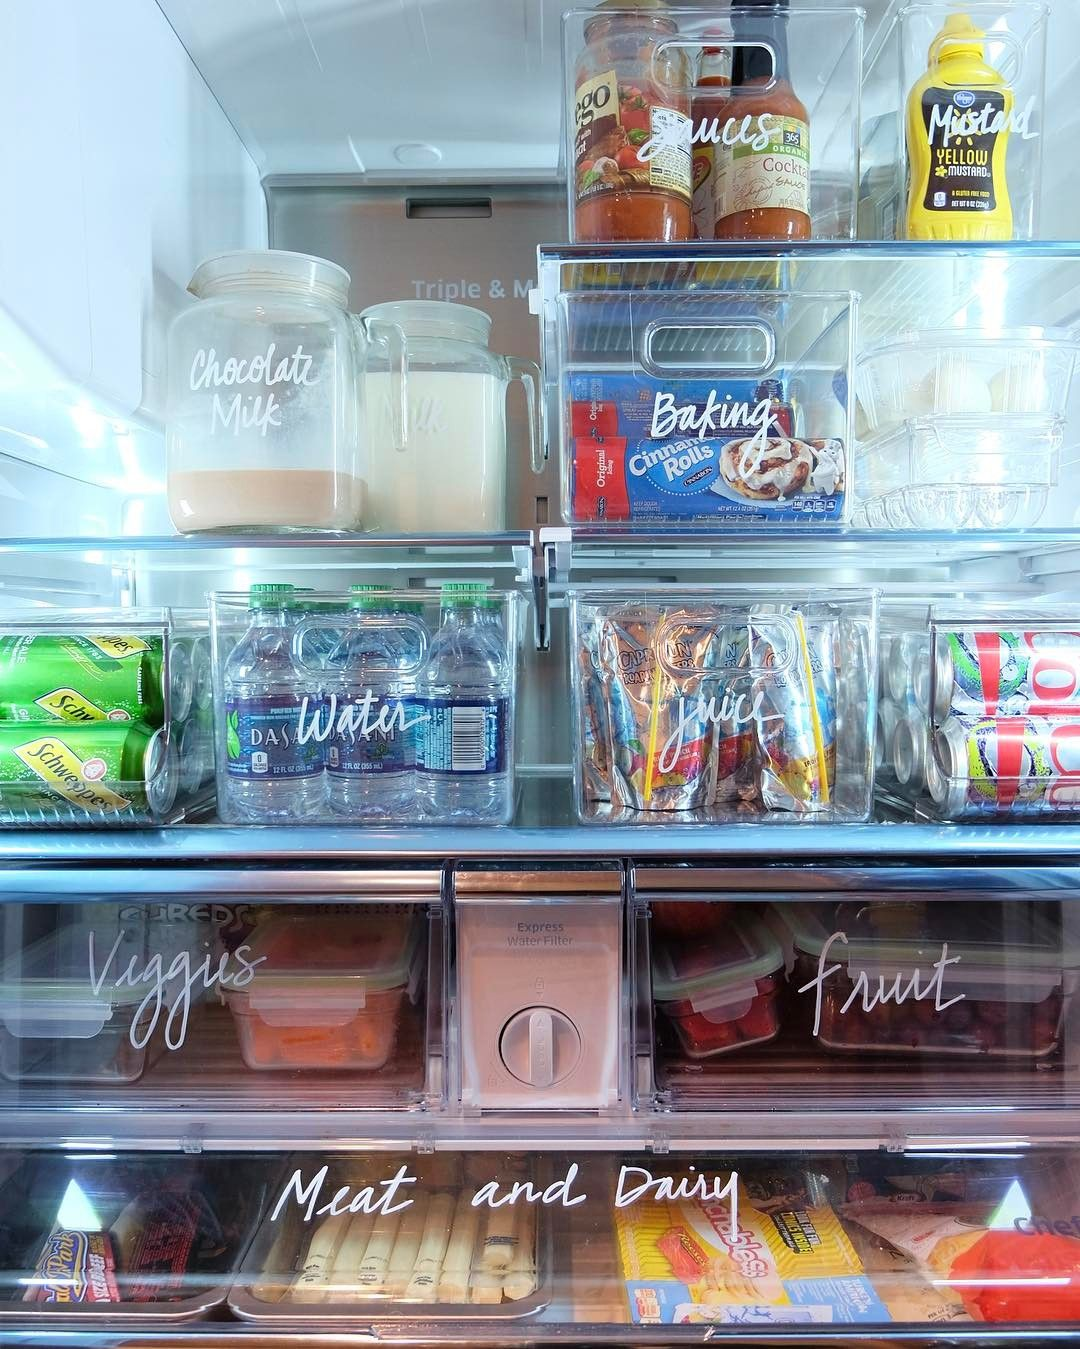 Pin by StephanieandSam Deleon on Clever Container | Pinterest ...